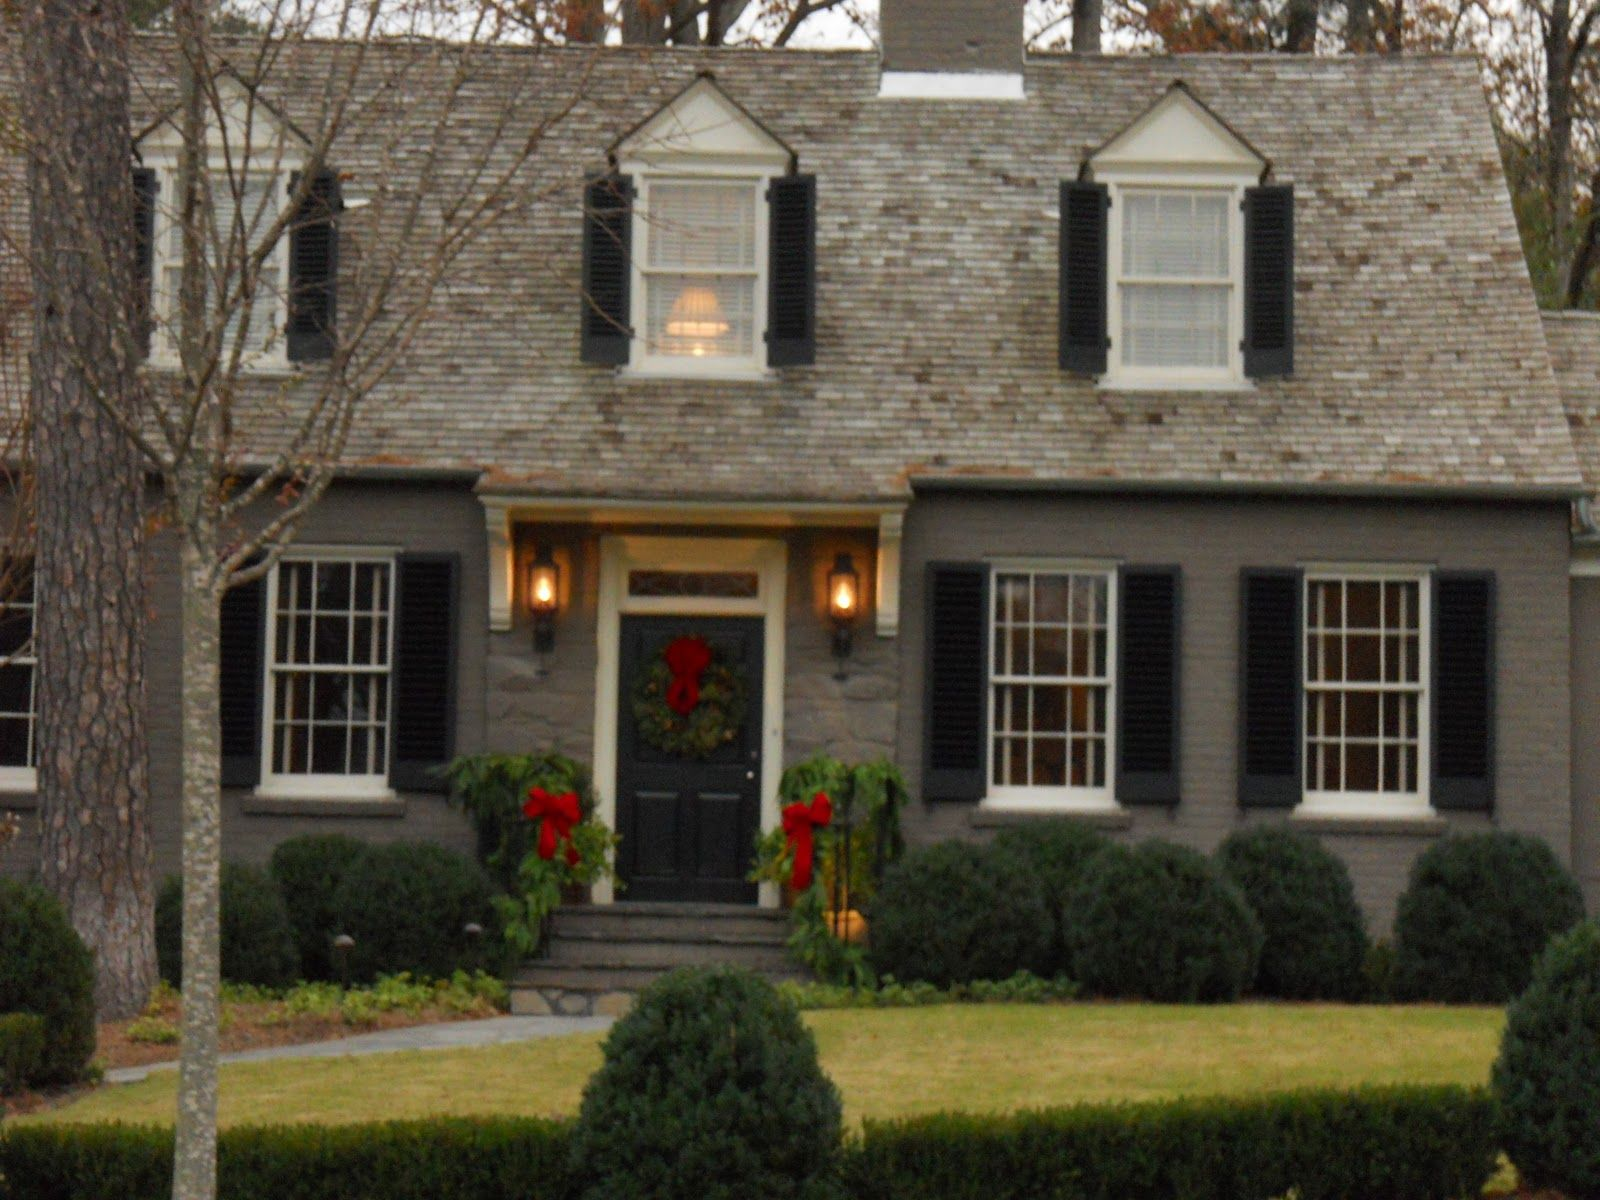 Red Black Tan House LOVE The Window Box Here And Of Course The RED Door We Want A New